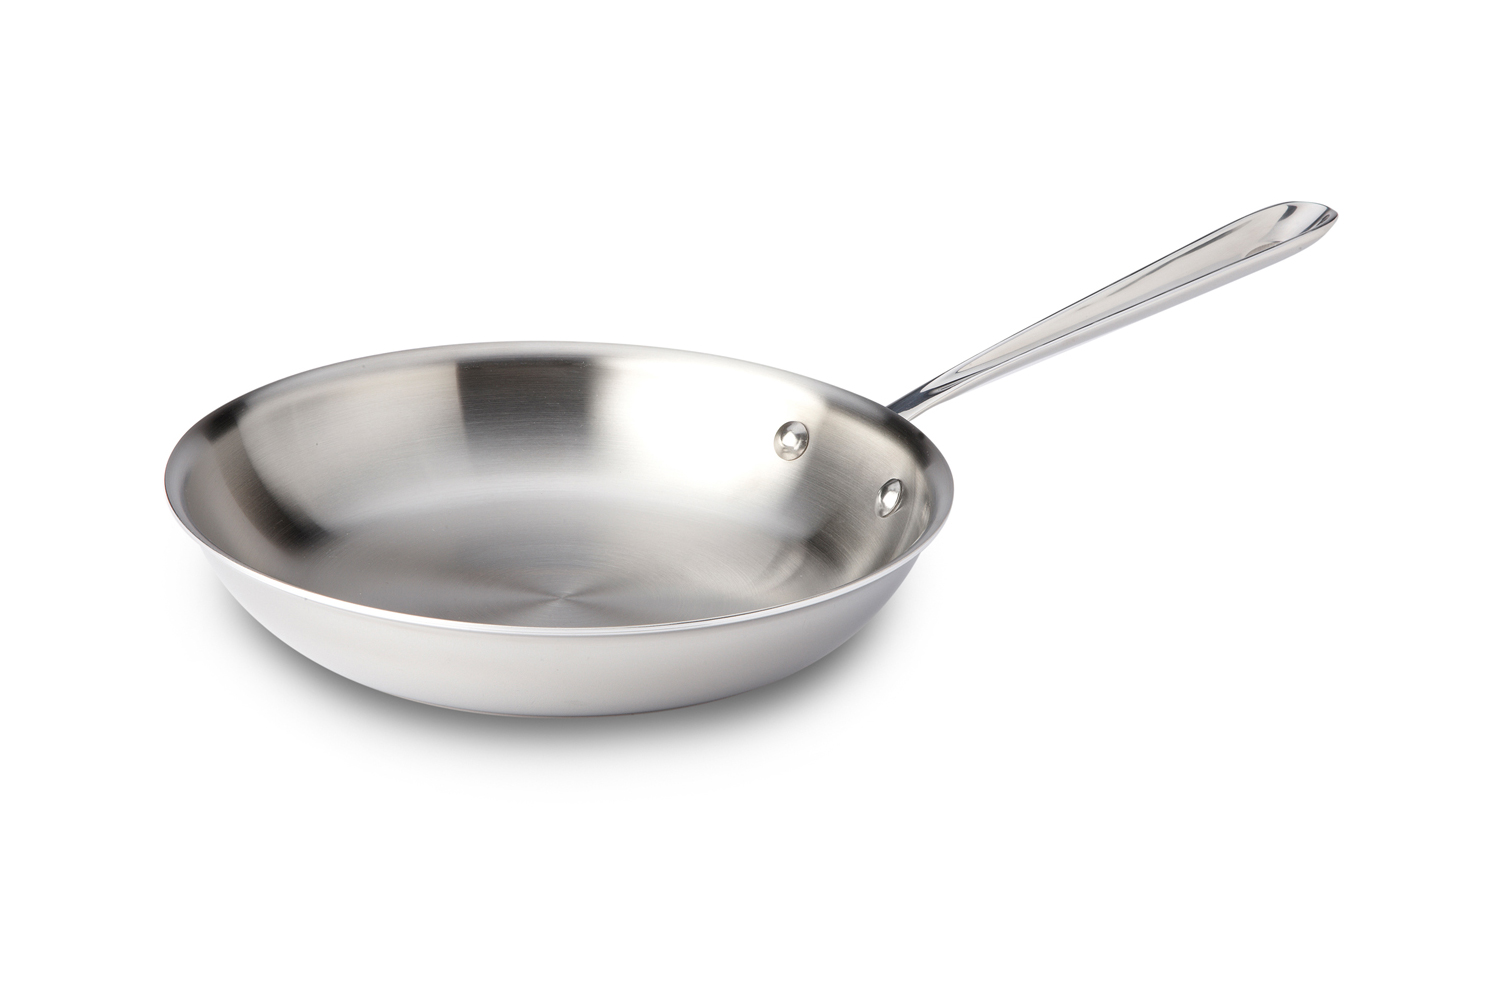 All-Clad d3 Tri-Ply Stainless Steel 8 inch Fry Pan